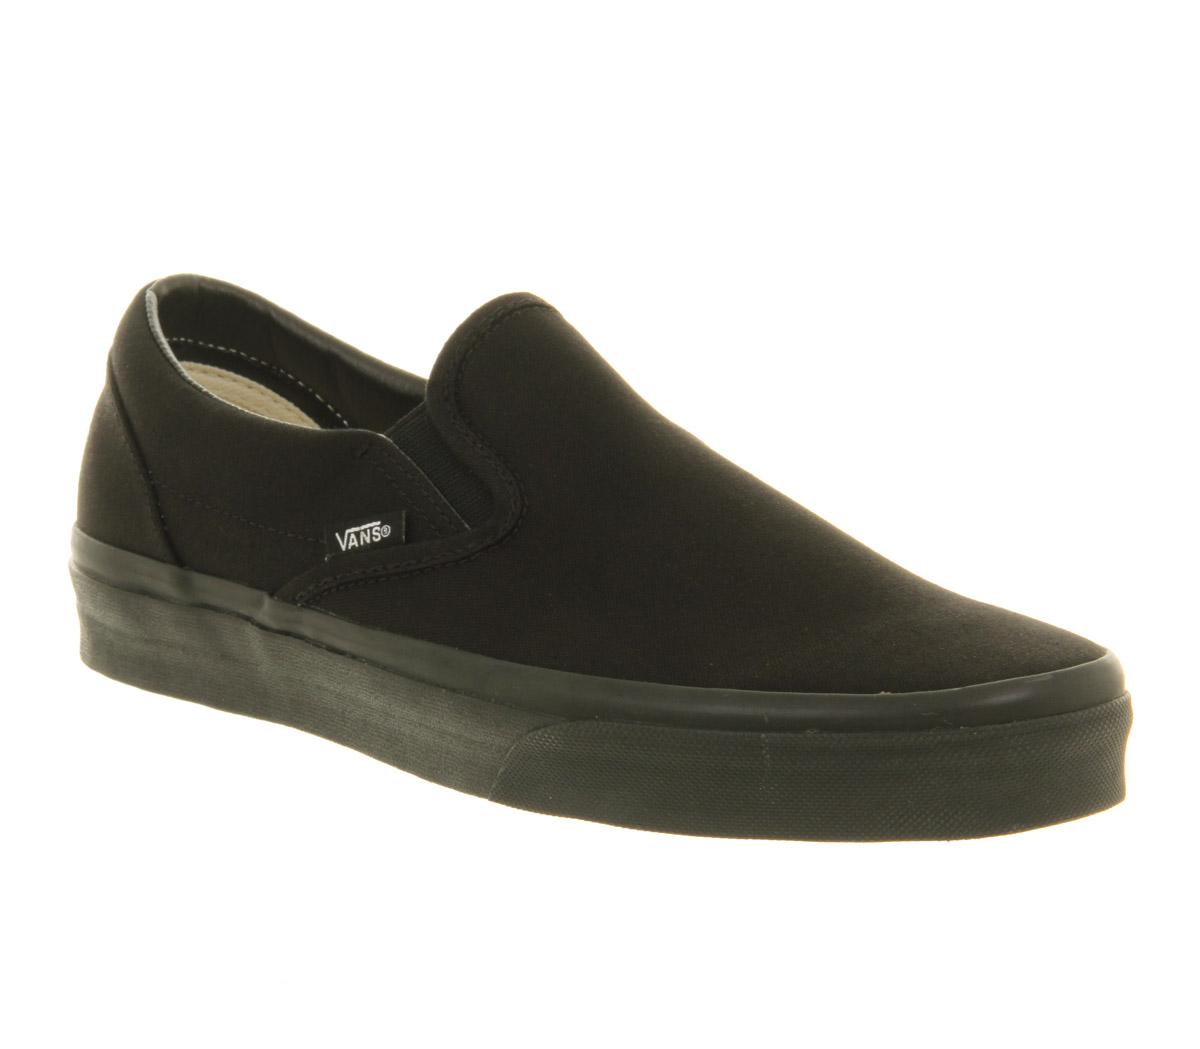 Mens-Vans-Vans-Classic-Slip-On-Black-Mono-Trainers-Shoes